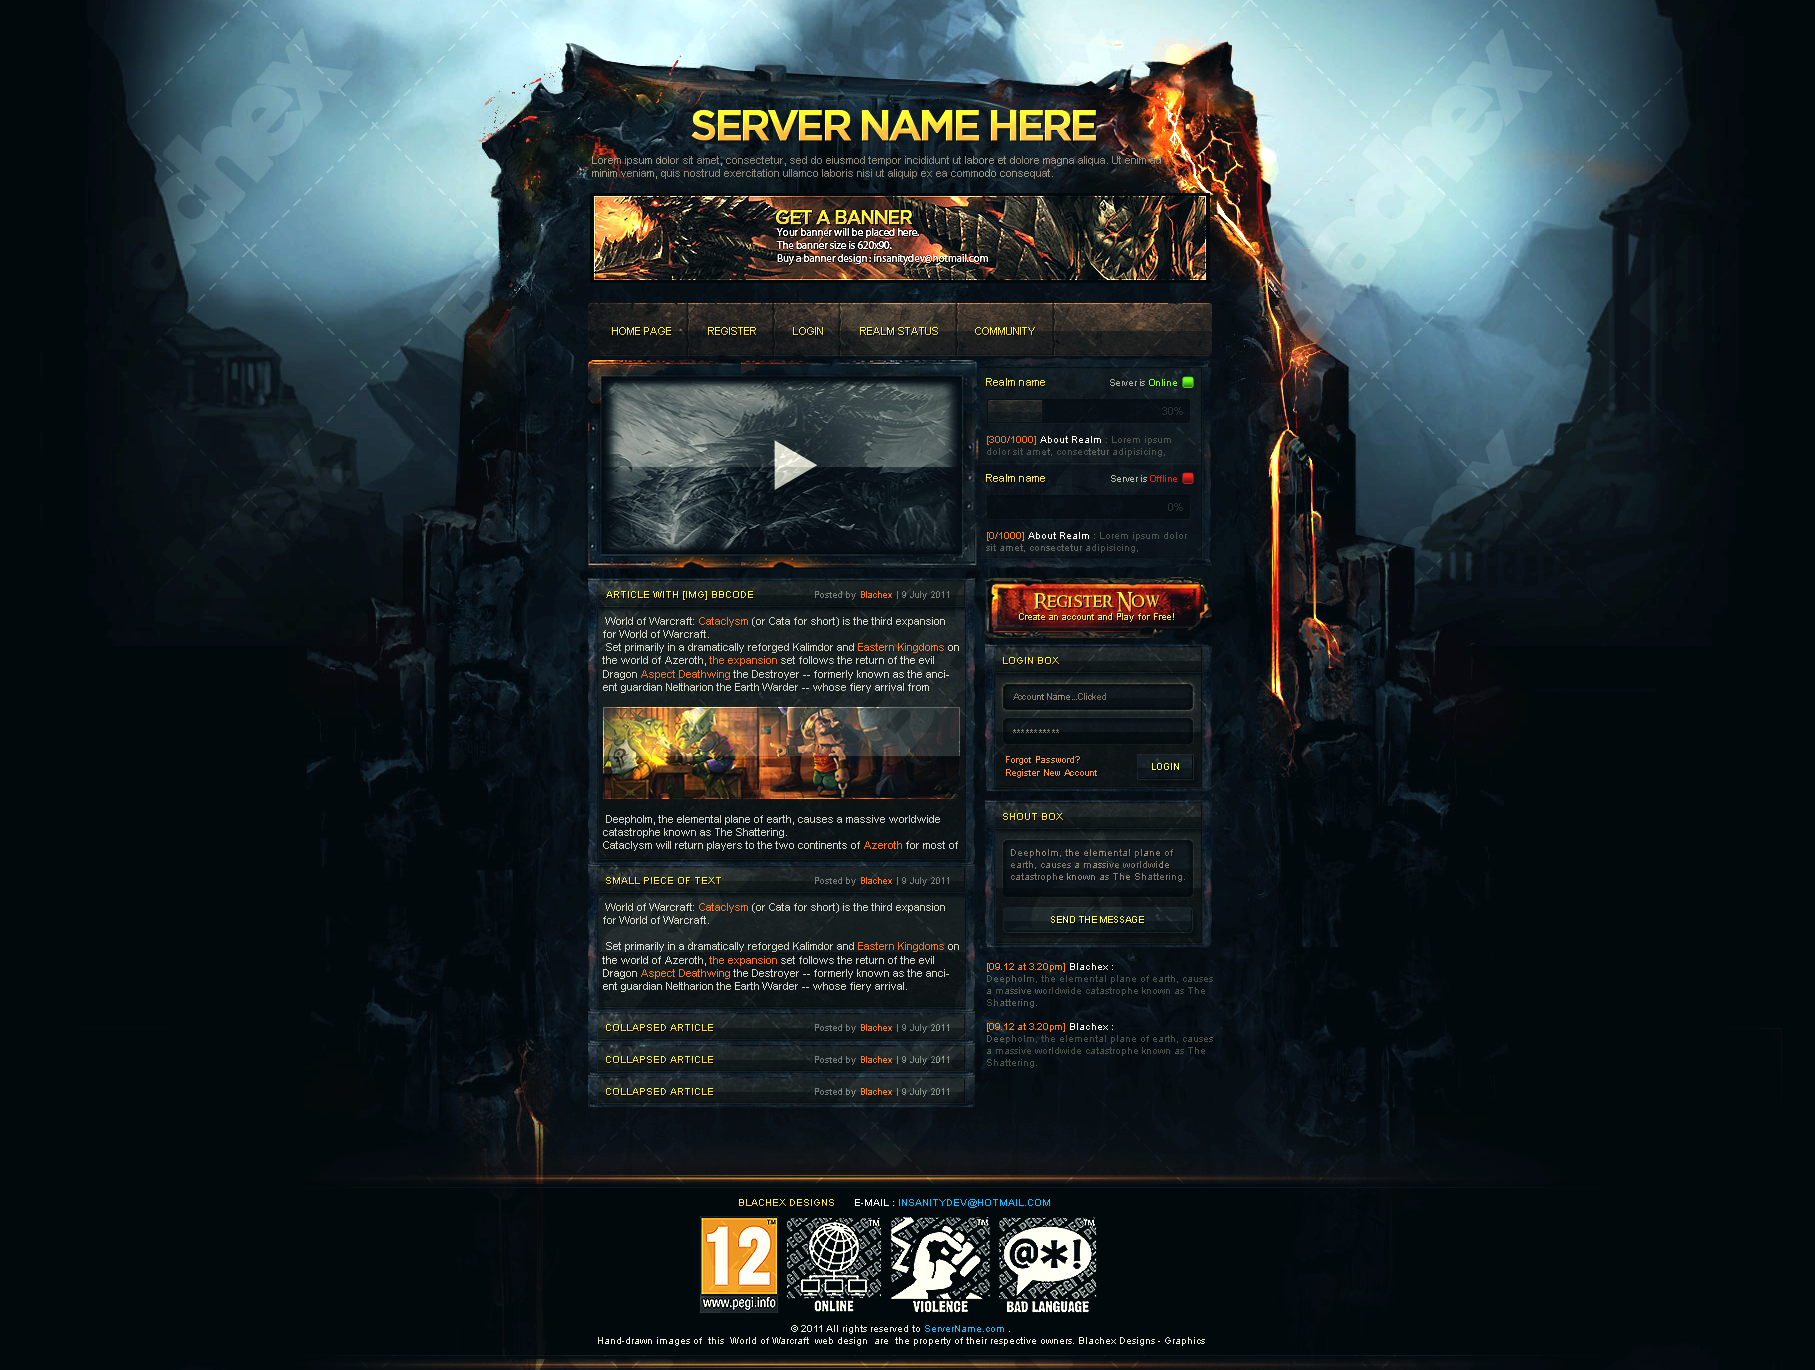 Wow Guild Website Template - Free Download